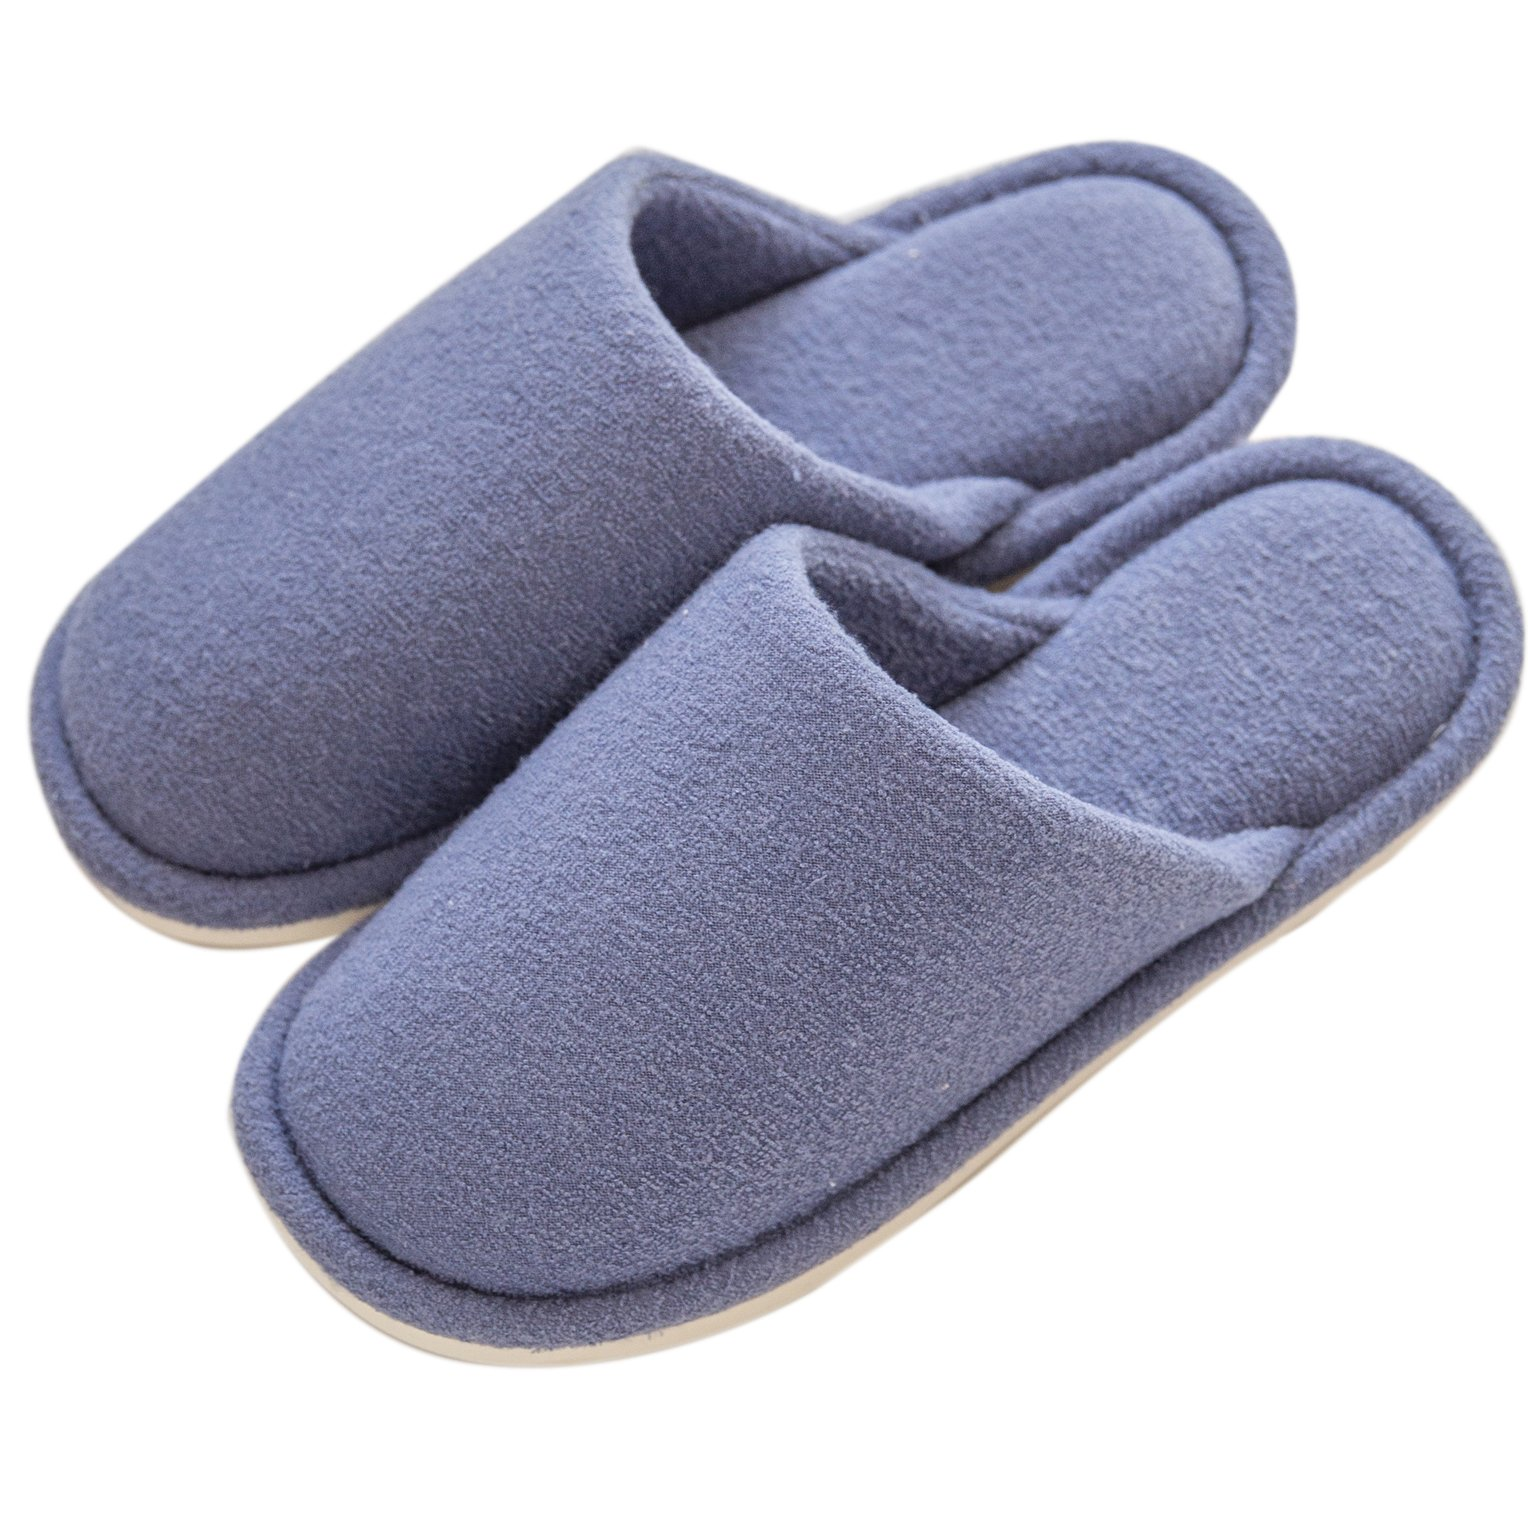 mianshe Comfort Knitted Cotton Slippers Anti-Slip House Shoes Lightweight Indoor Home for Womens Mens